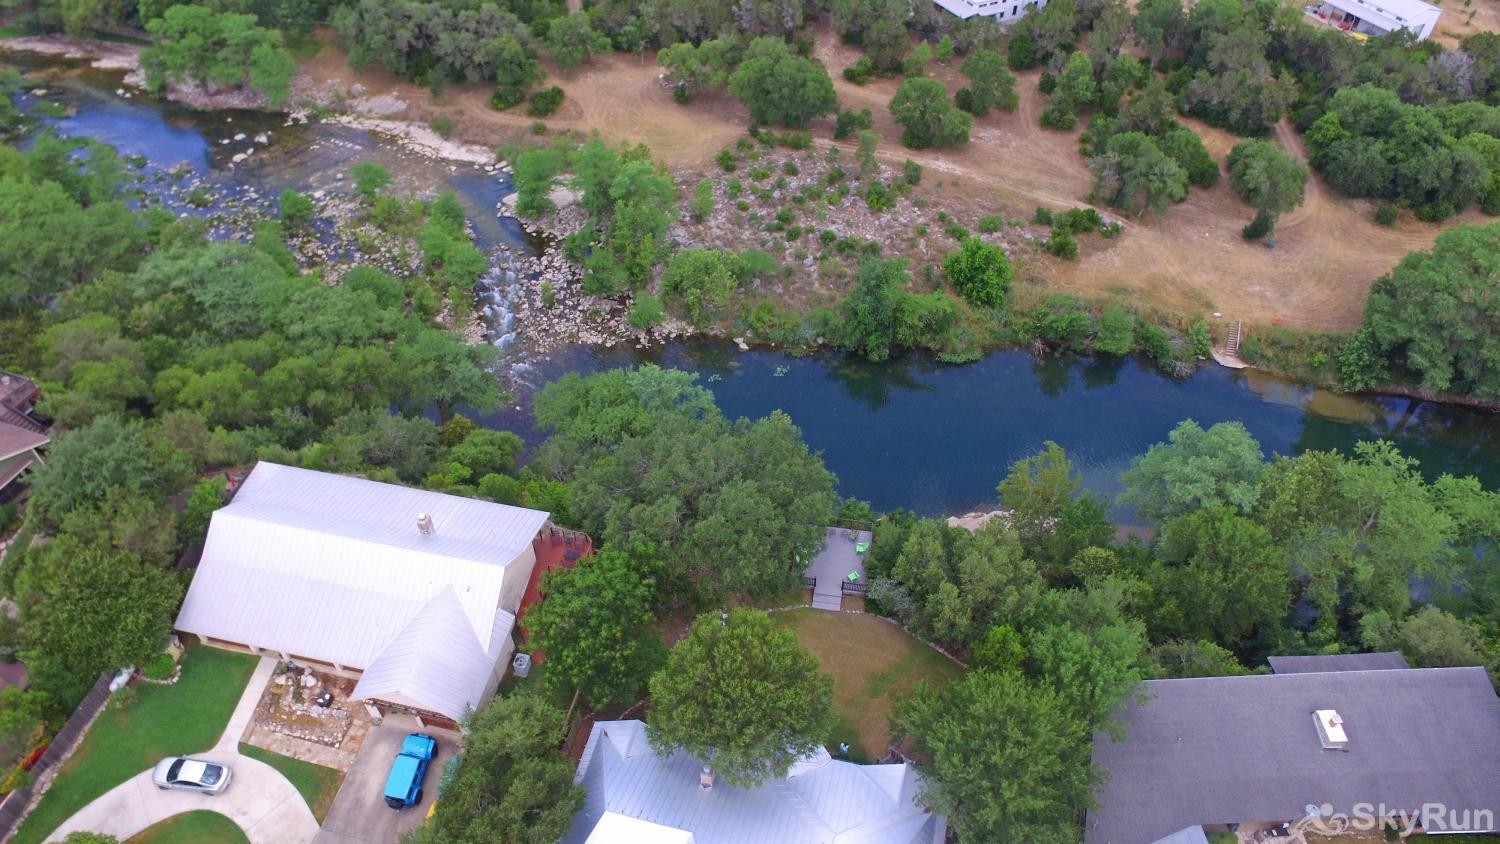 GRUENE VISTA ON THE GUADALUPE Aerial View of Backyard and Deck, with the River Below